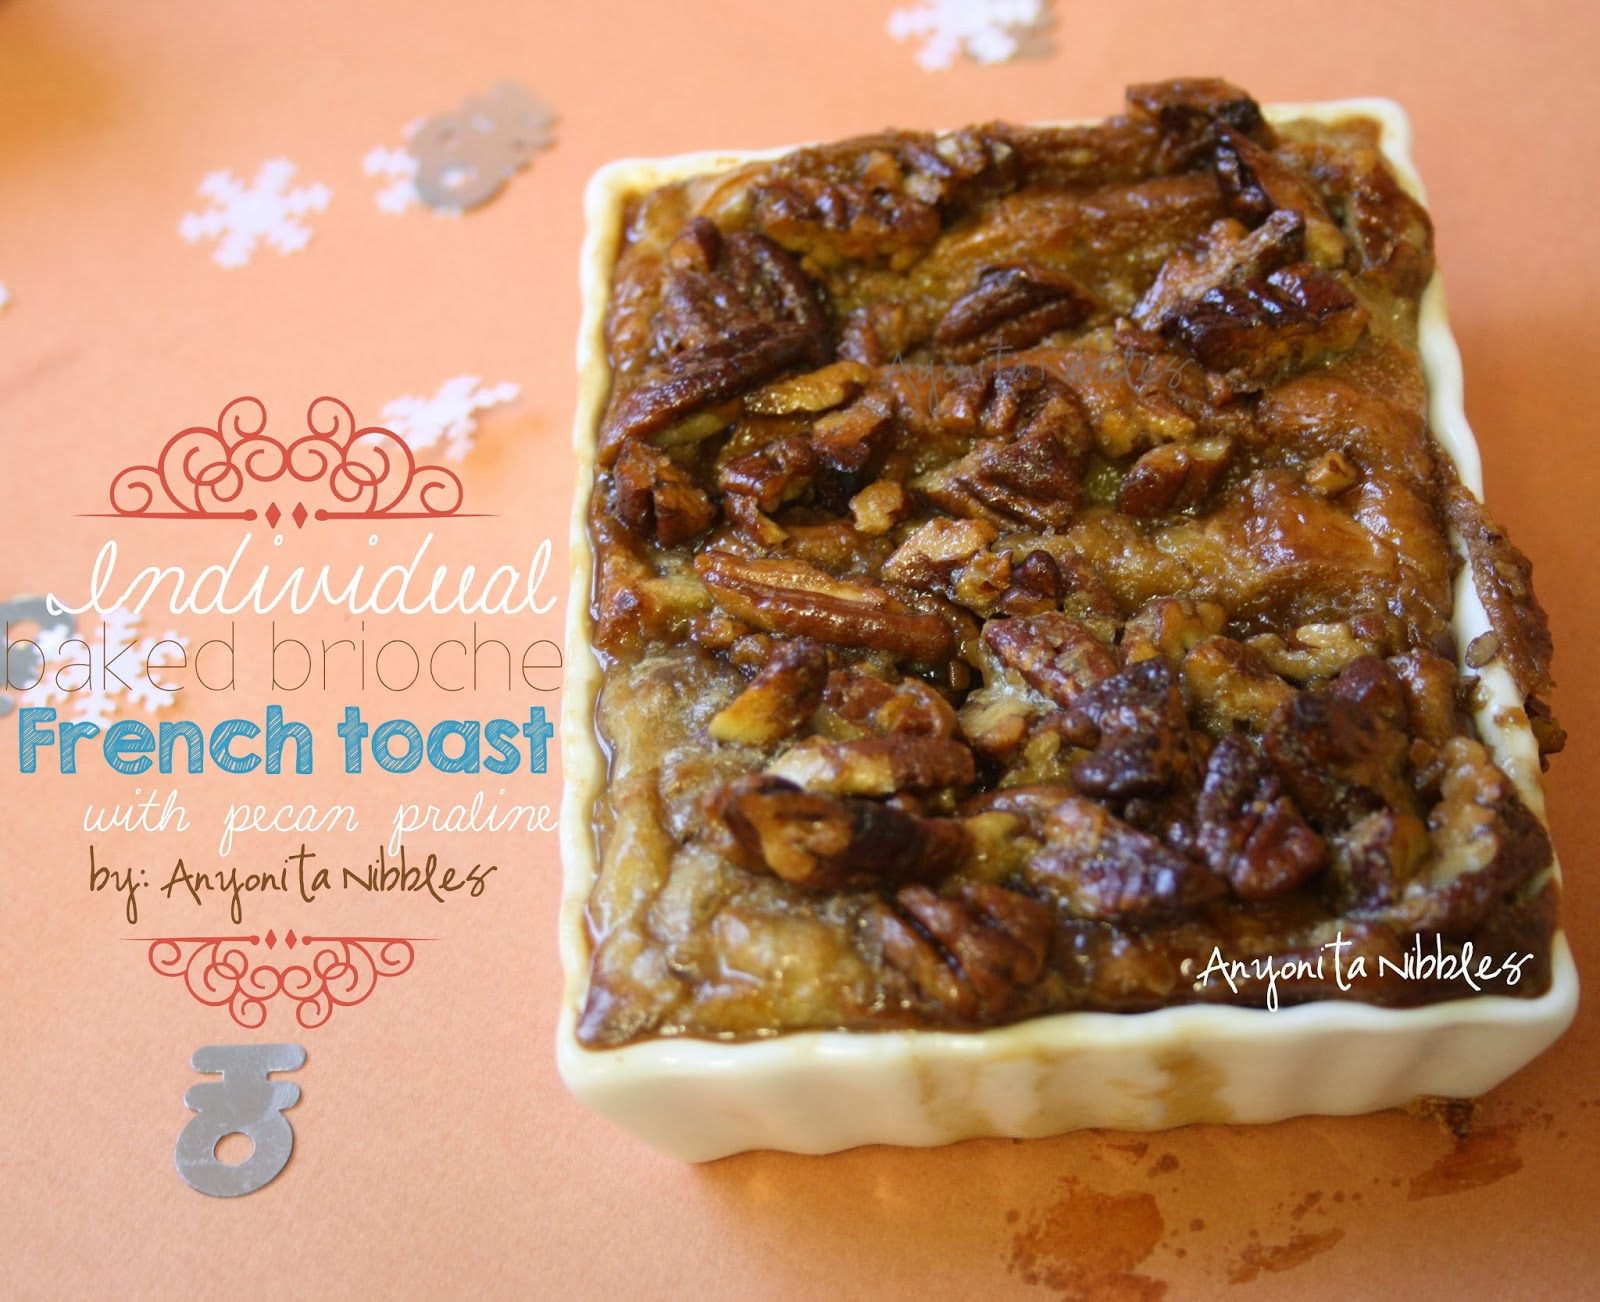 Anyonita Nibbles Gluten Free Recipes Individual Baked Gluten Free Brioche French Toast With Pecan Praline Recipe